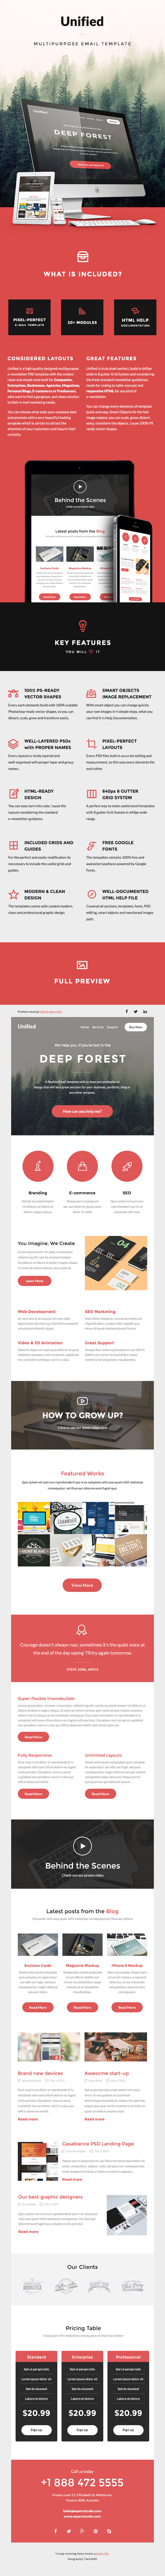 Unified - Multipurpose E-newsletter Template